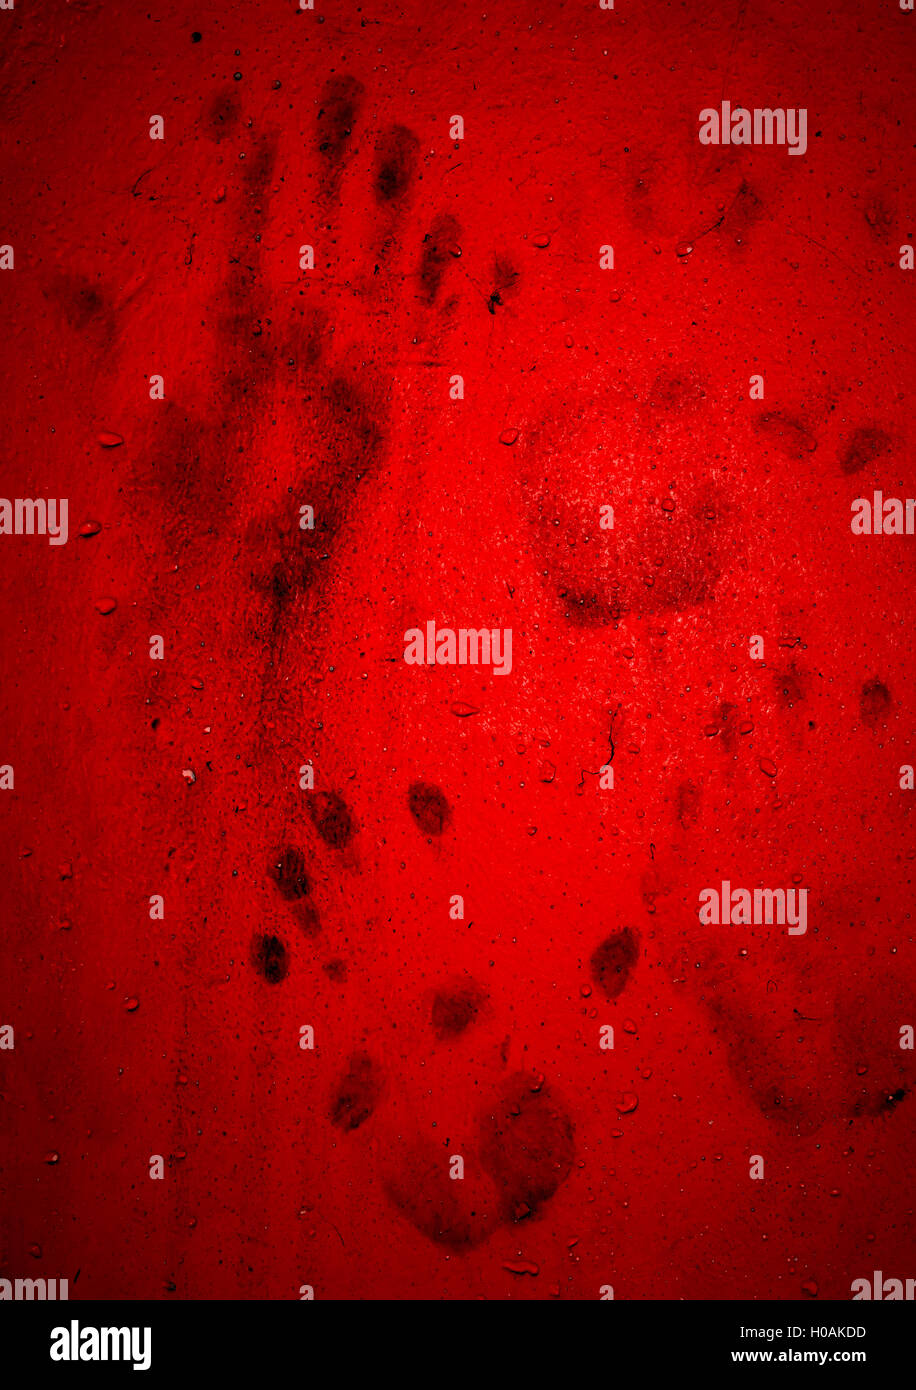 dirty hand prints on red wall. ideas for background halloween stock